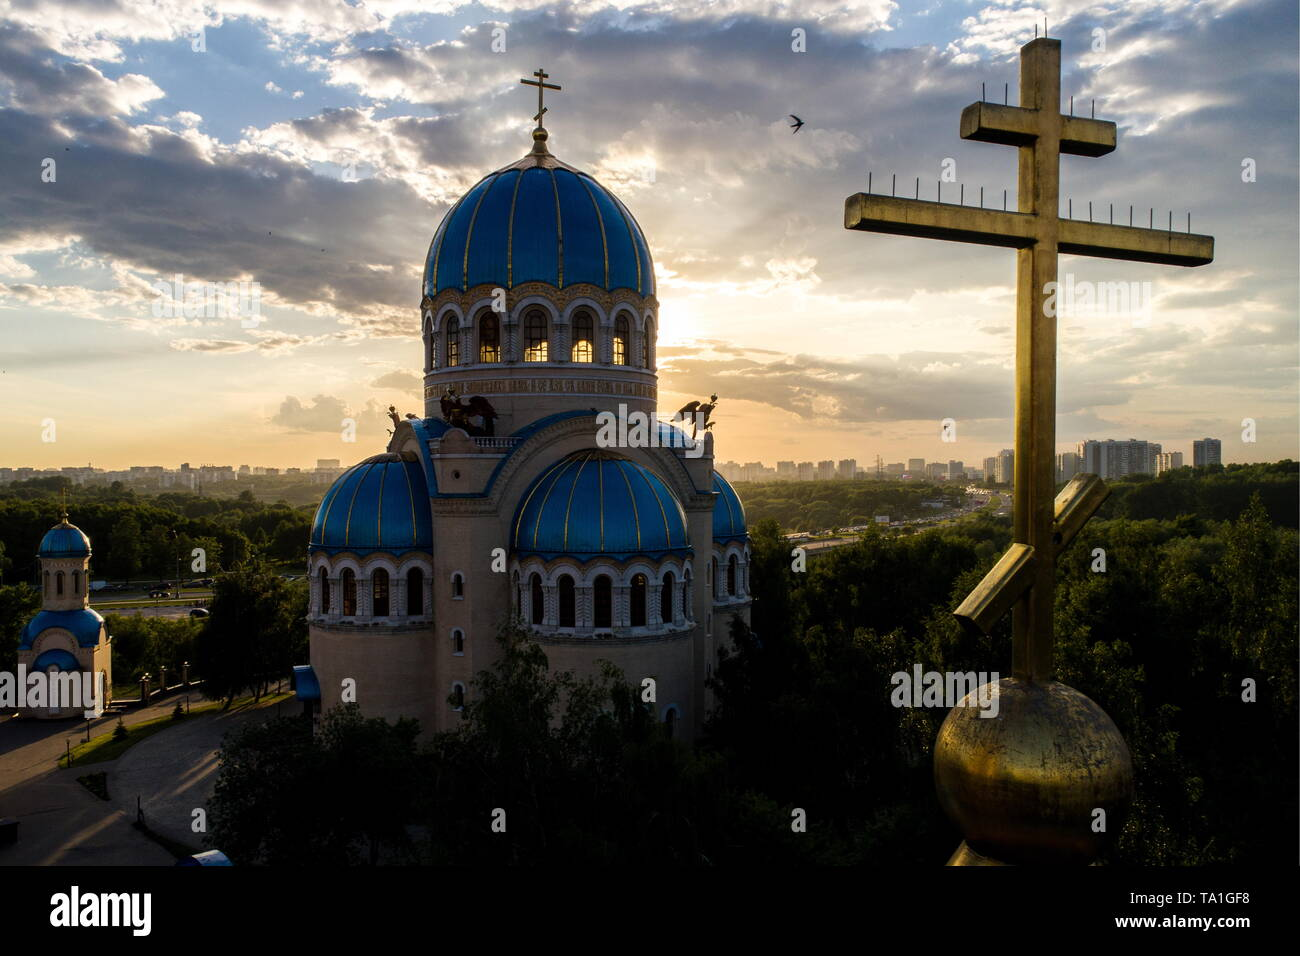 Moscow, Russia. 21st May, 2019. MOSCOW, RUSSIA - MAY 21, 2019: An aerial view of the Church of the Holy Trinity at the Borisovo Ponds built to commemorate the 1000th anniversary of the Christianization of Rus. Sergei Bobylev/TASS Credit: ITAR-TASS News Agency/Alamy Live News - Stock Image